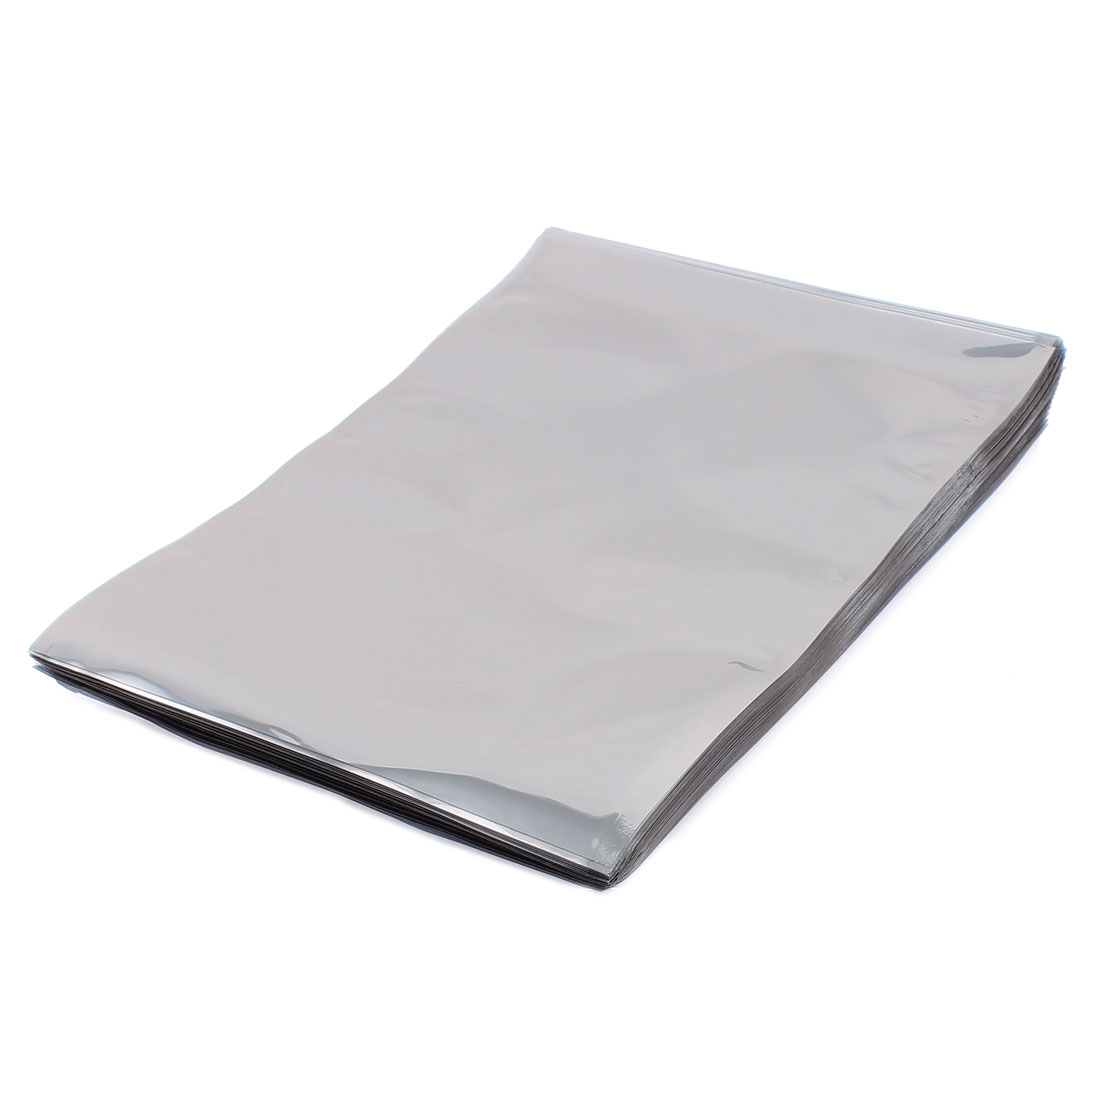 100 Pcs 160mm x 230mm Silver Tone Flat Open Top Anti Static Bag For Electronics